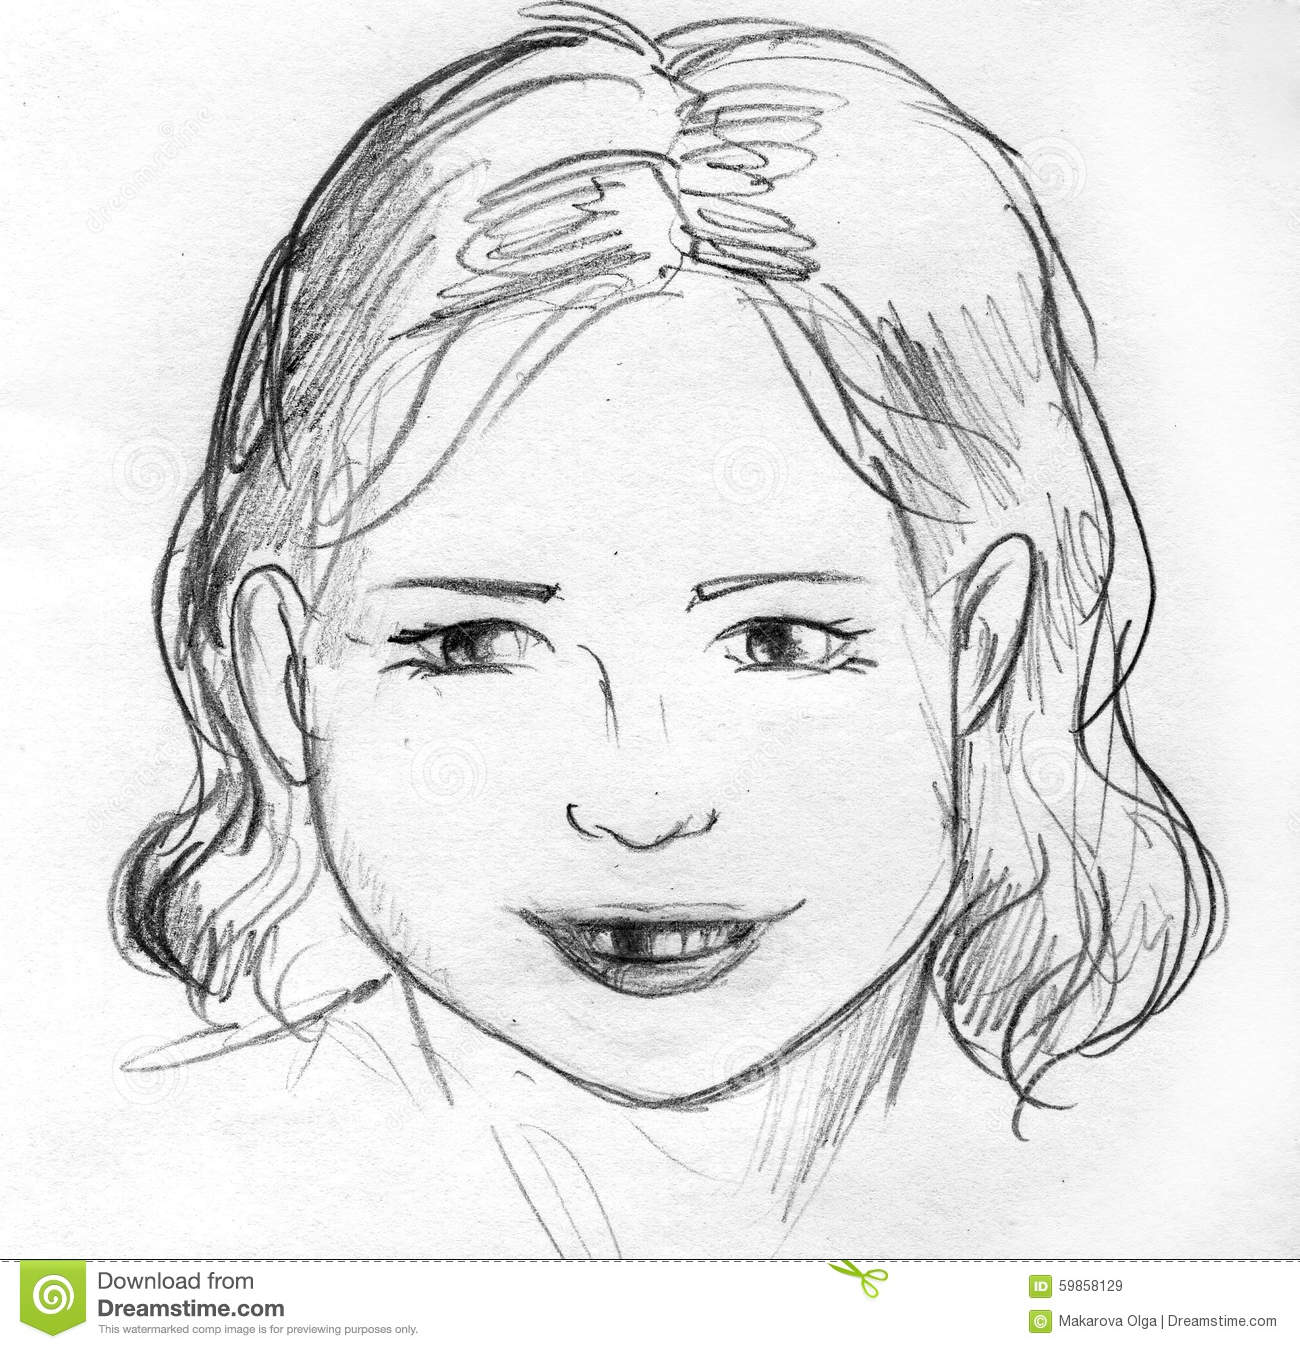 Lost a baby tooth pencil sketch vector illustration